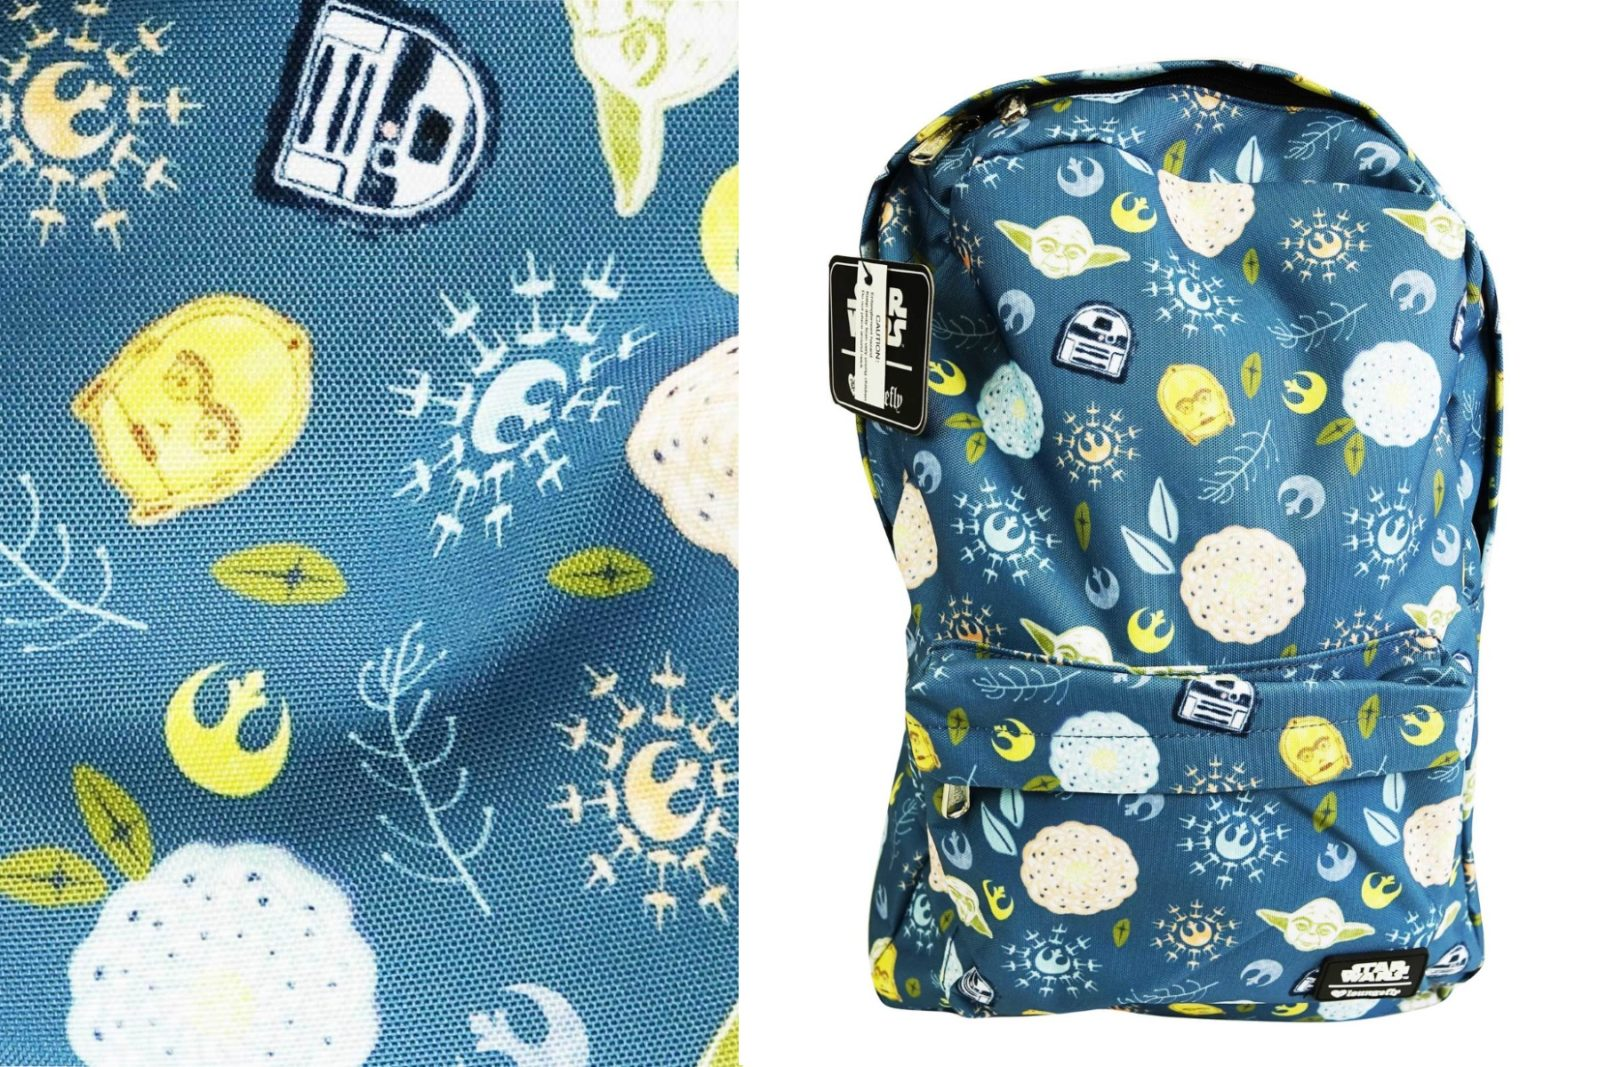 New Loungefly x Star Wars Printed Backpack